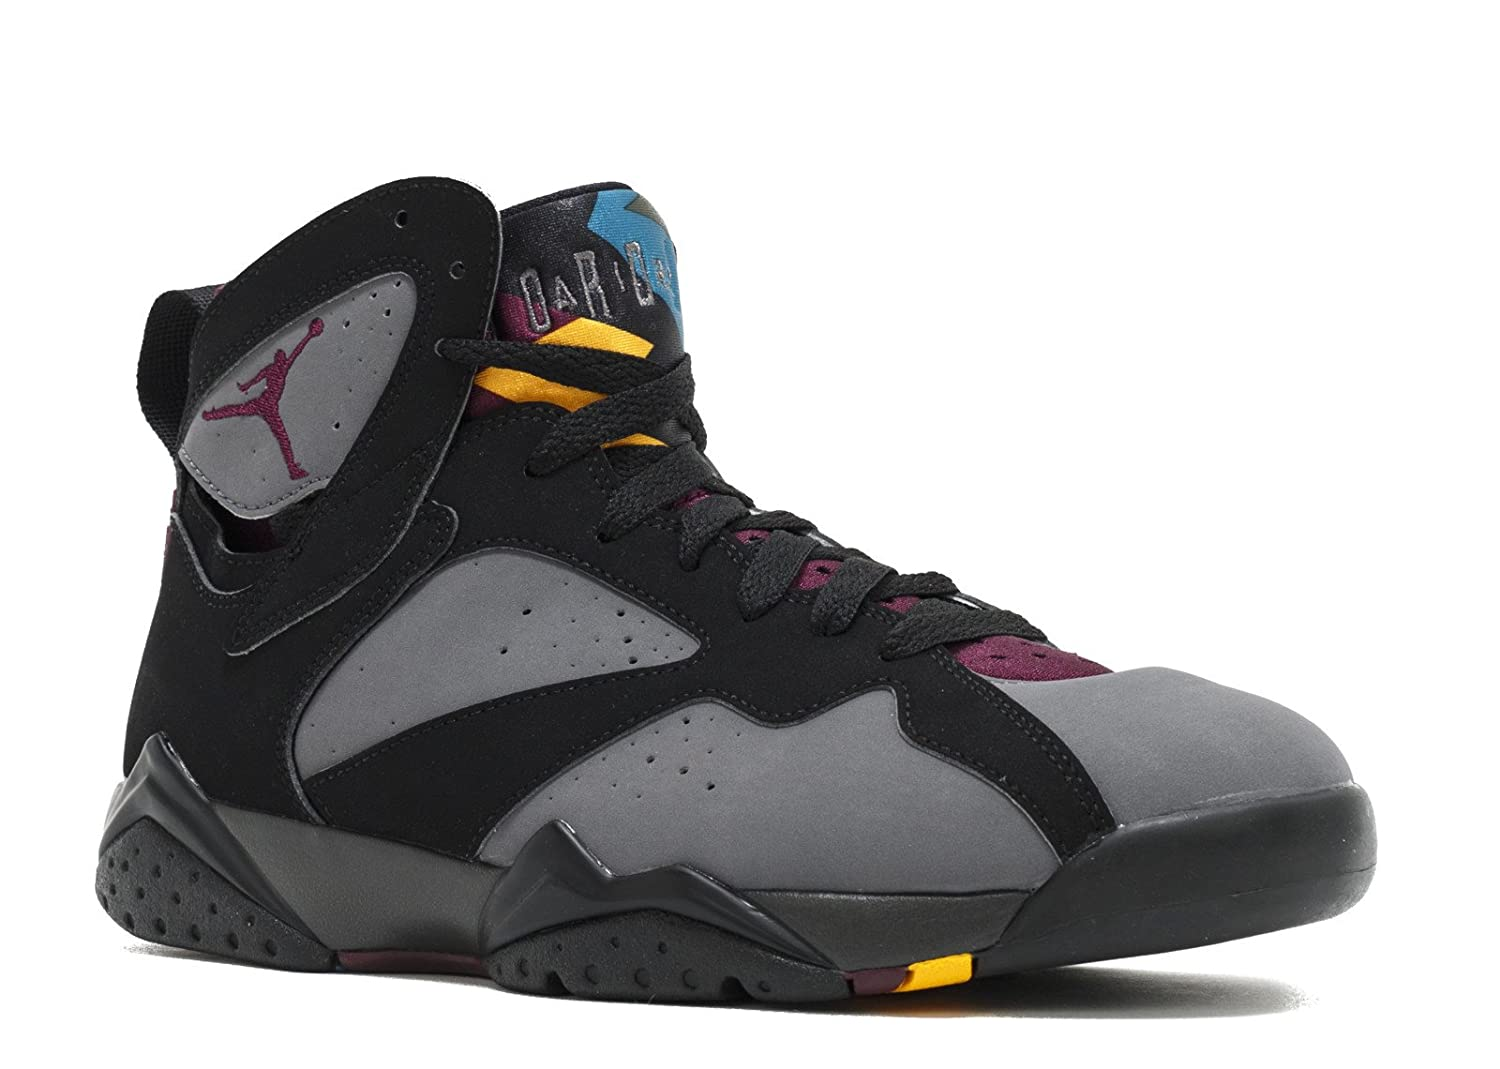 f806e3a6d1b Amazon.com | AIR Jordan 7 Retro 'Bordeaux 2015' - 304775-034 | Basketball